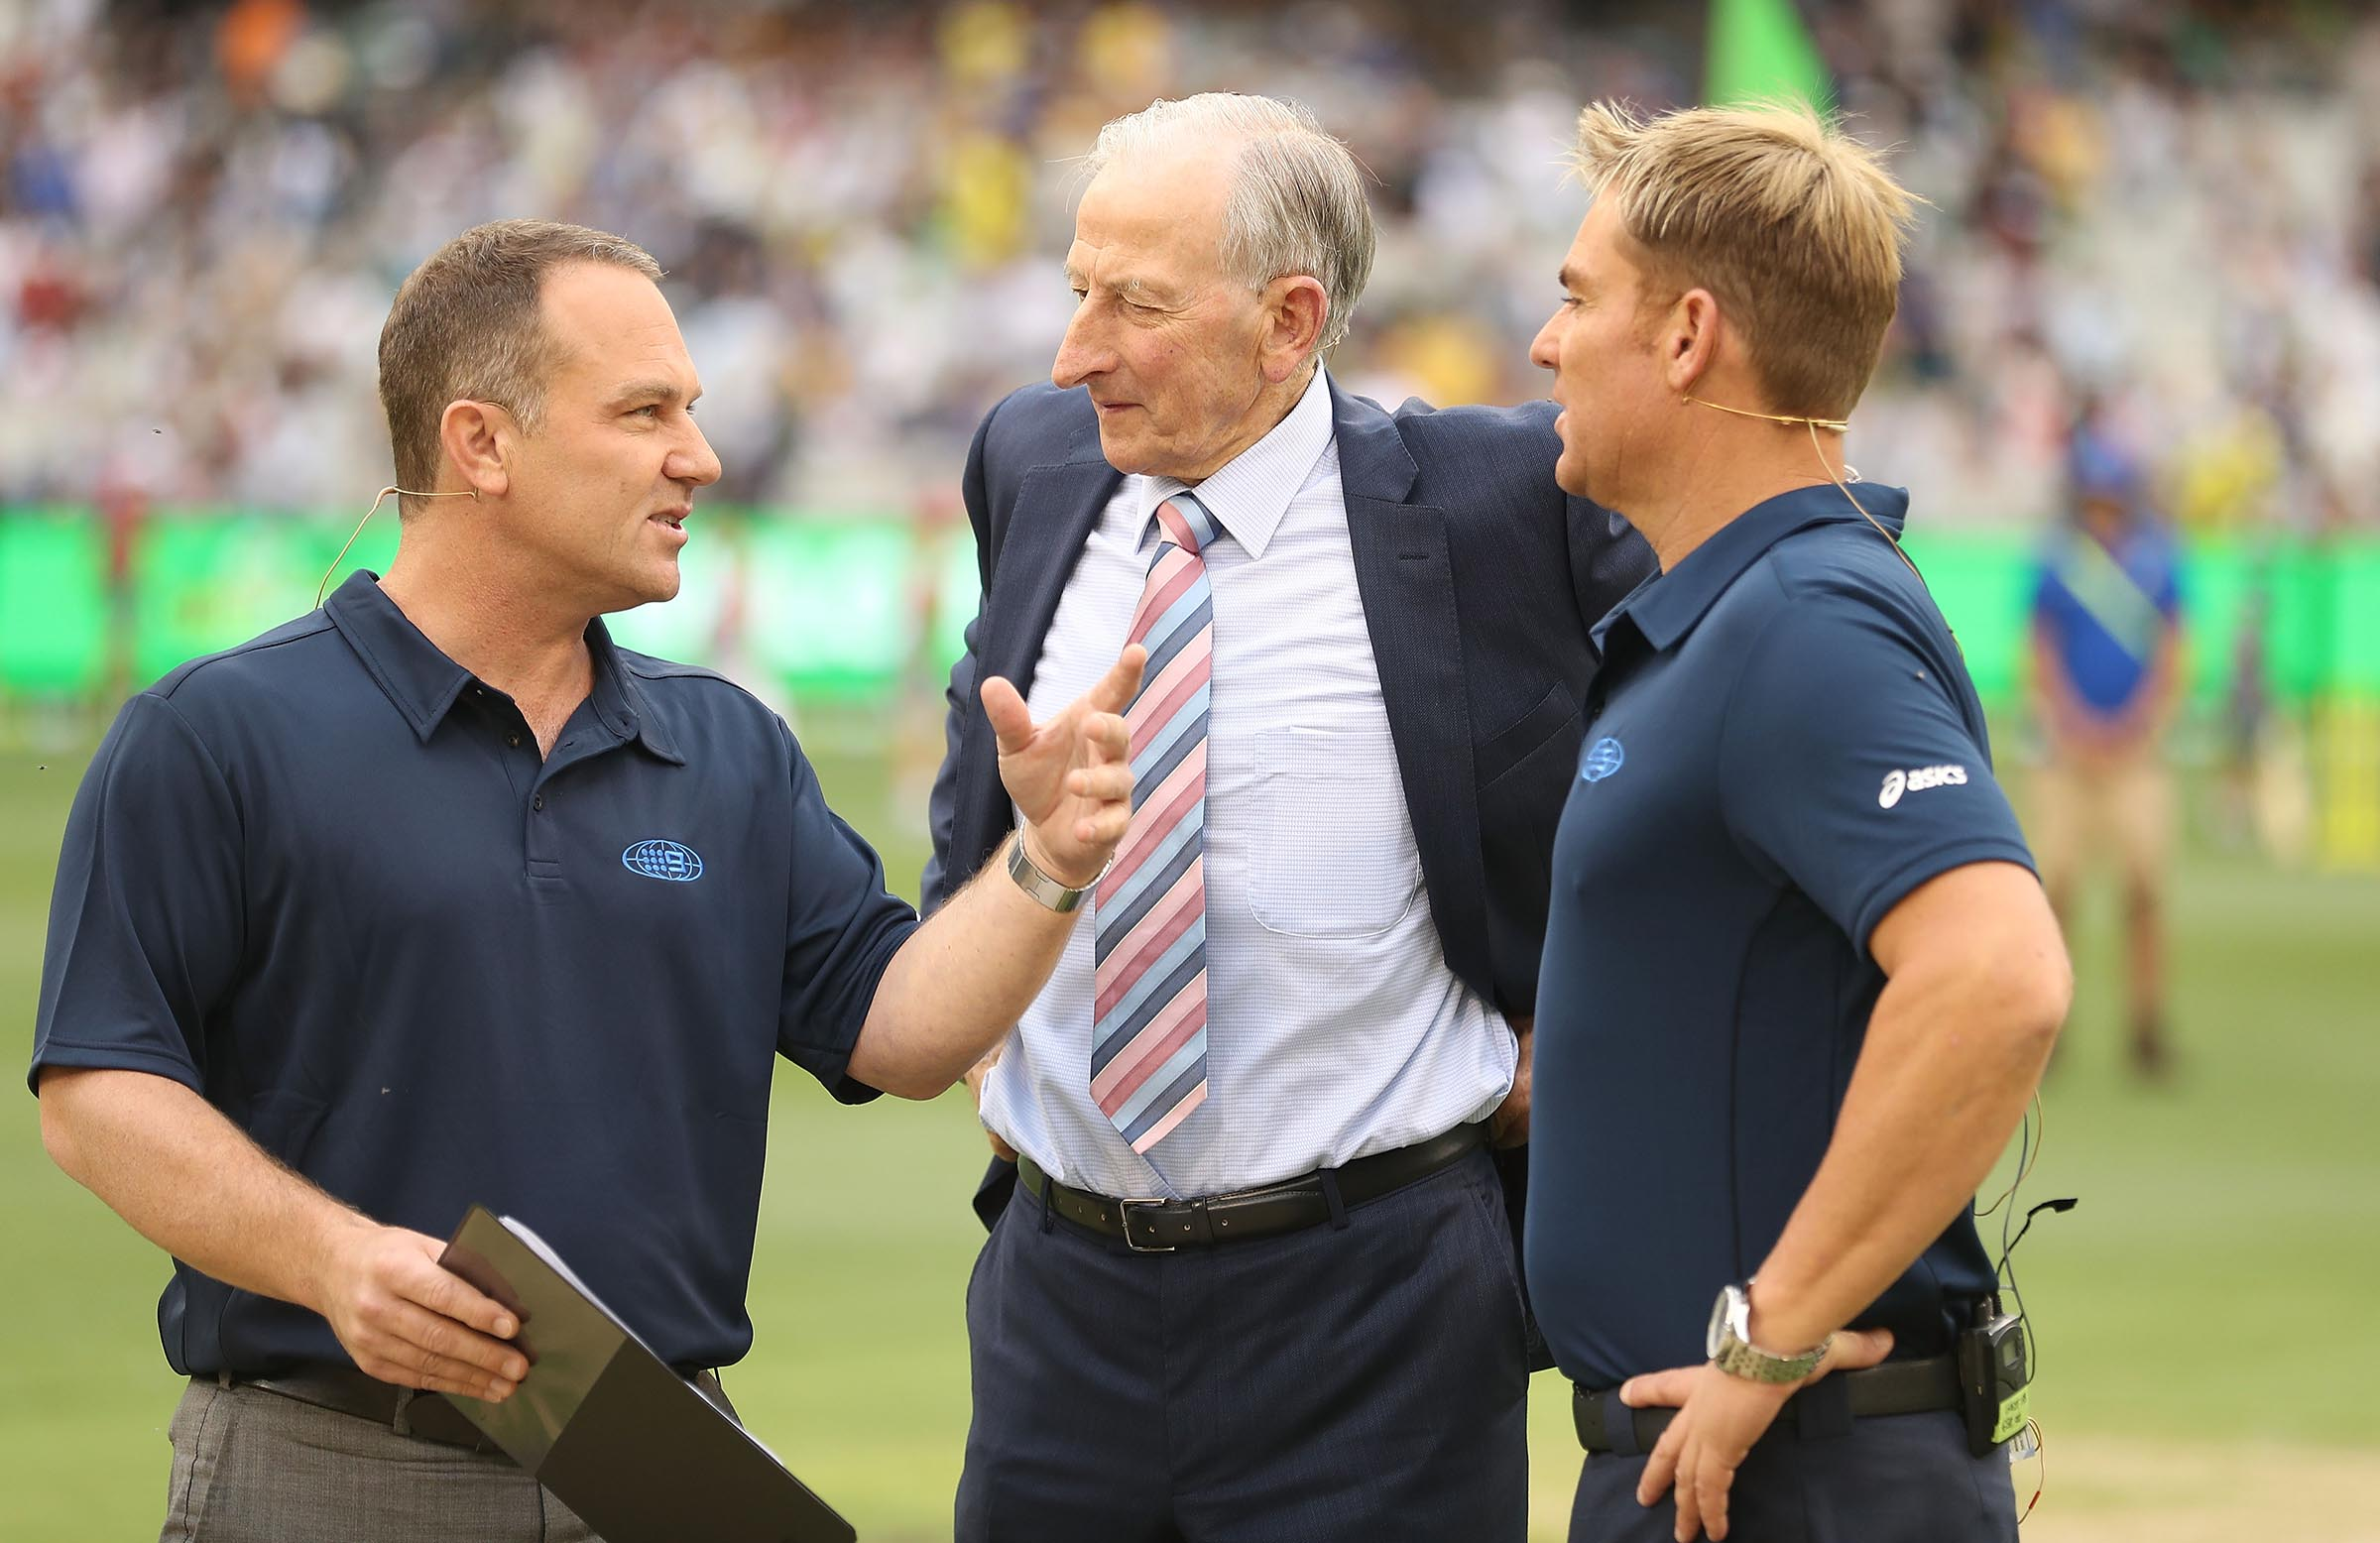 Lawry with the new commentary wave - Michael Slater and Shane Warne \\ Getty